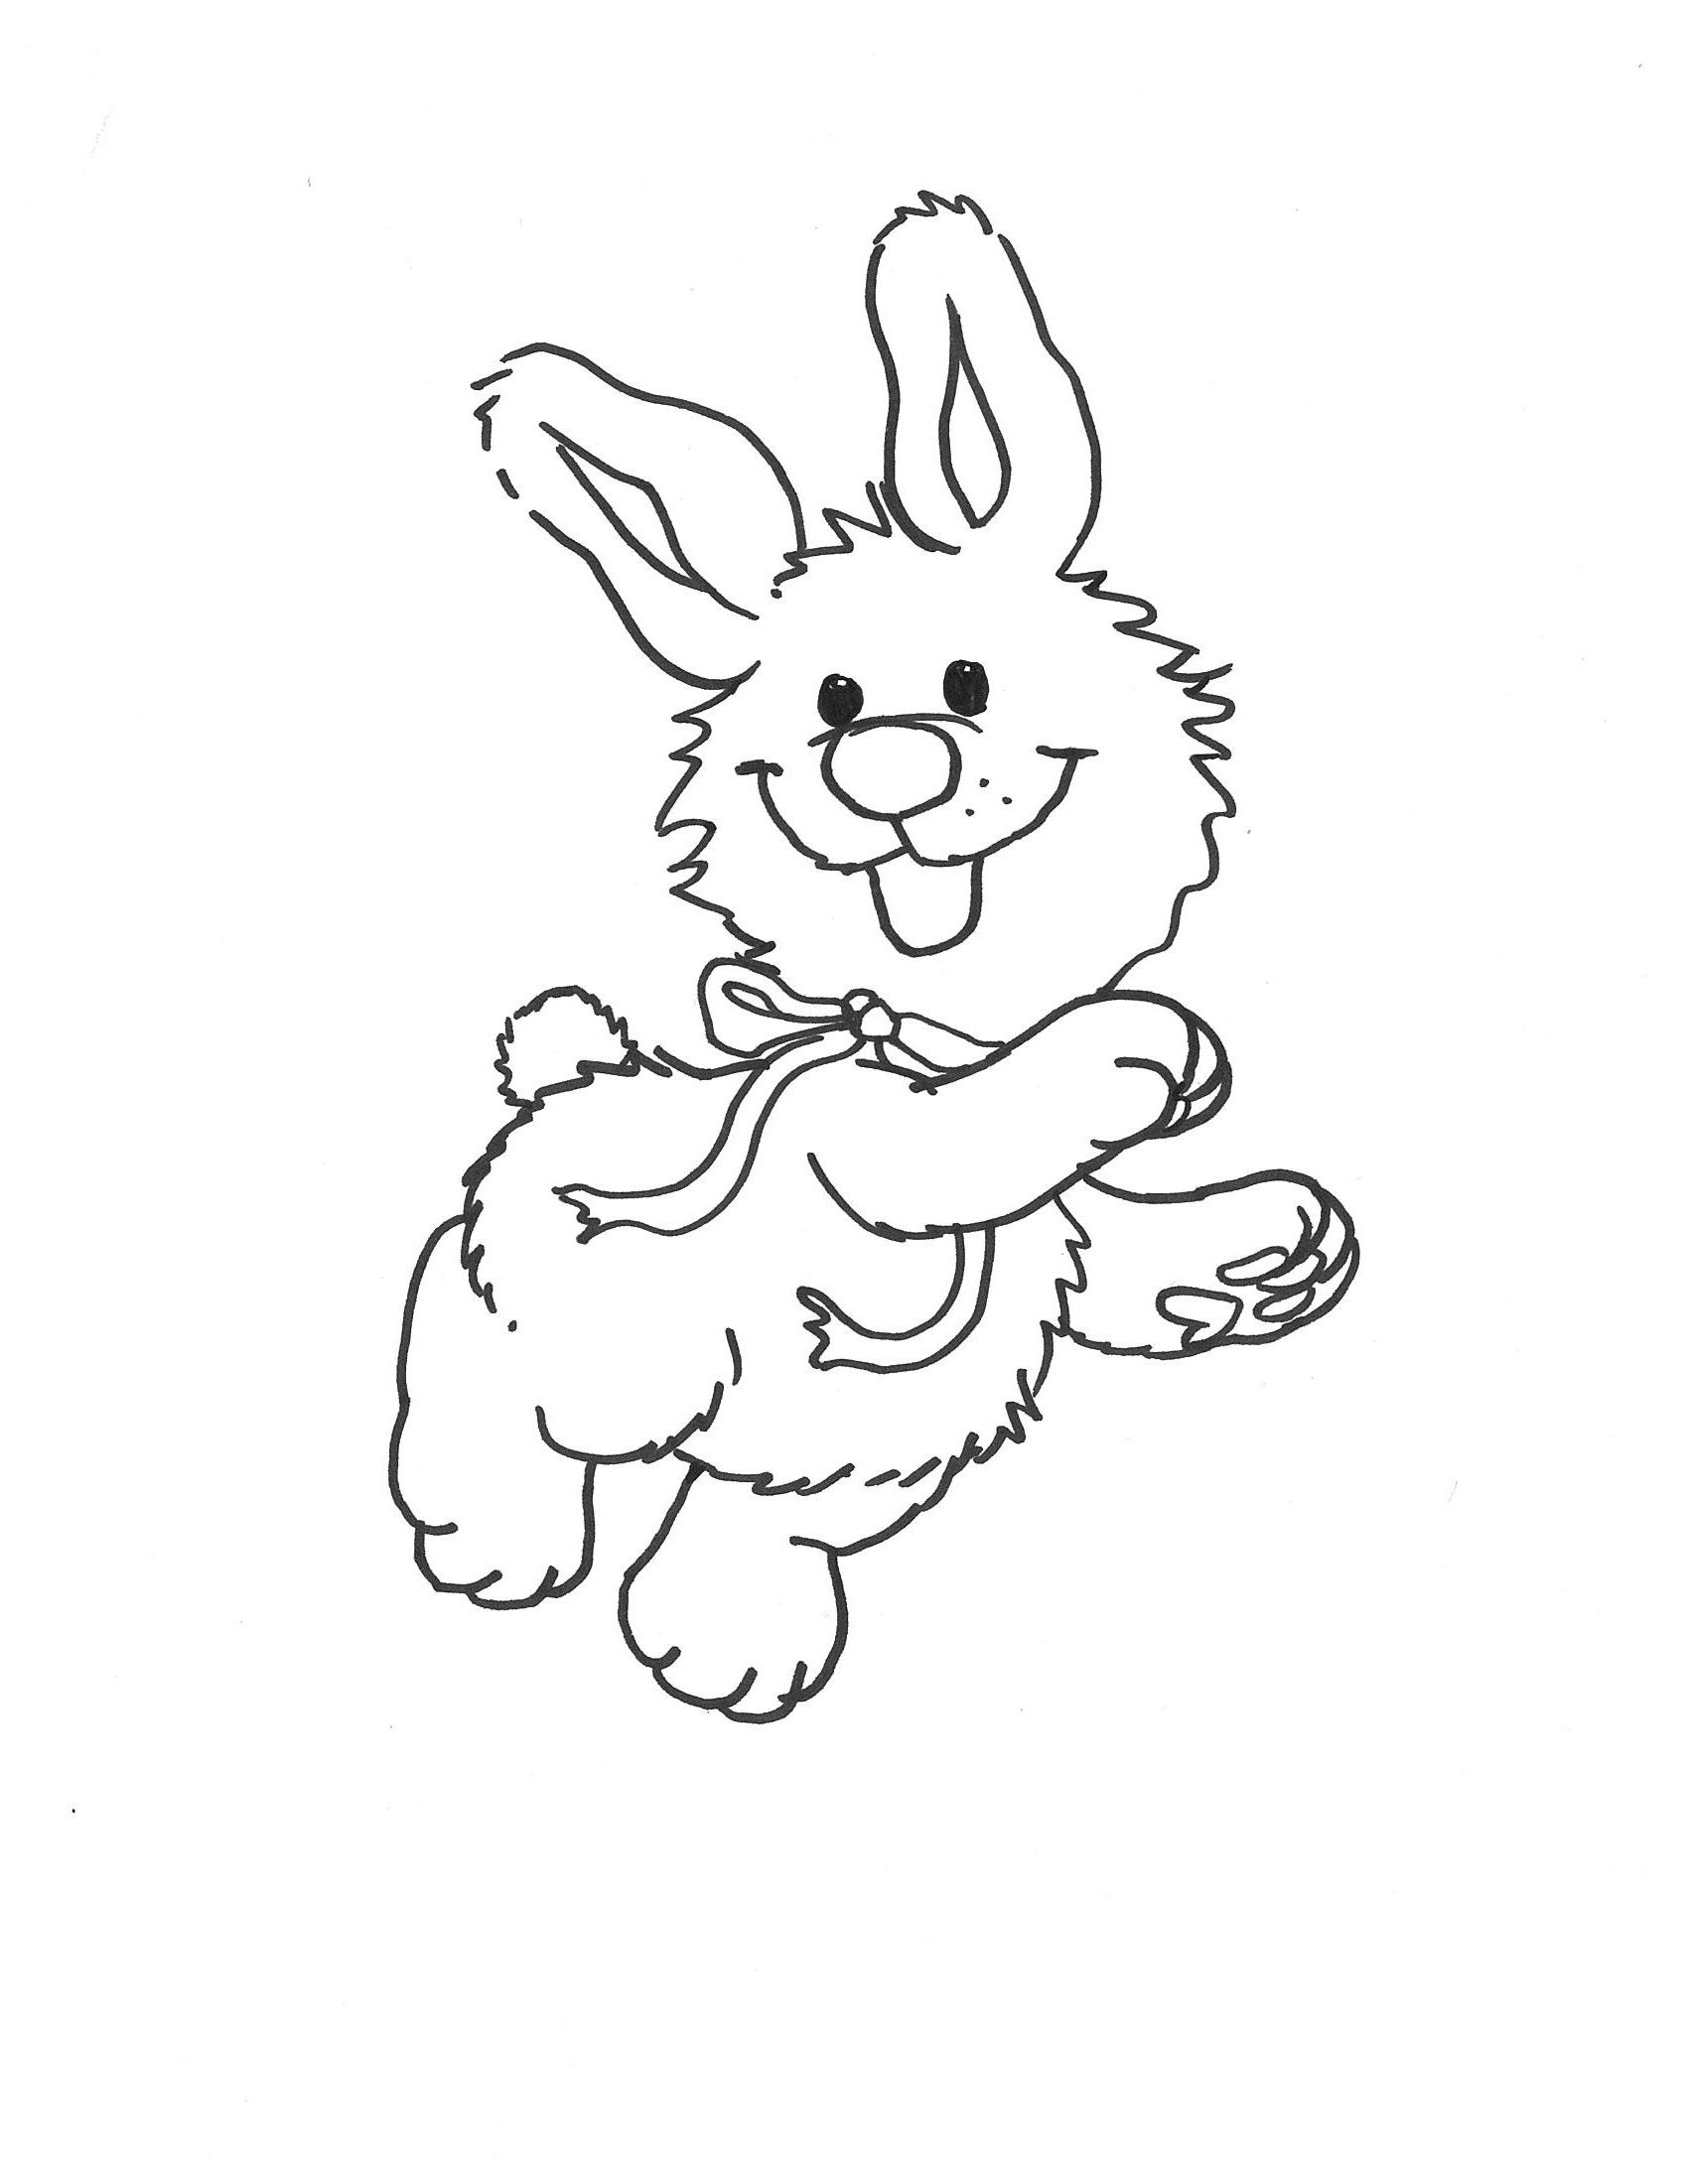 Suzy S Zoo Coloring Page Zoo Coloring Pages Suzys Zoo Bunny Coloring Pages